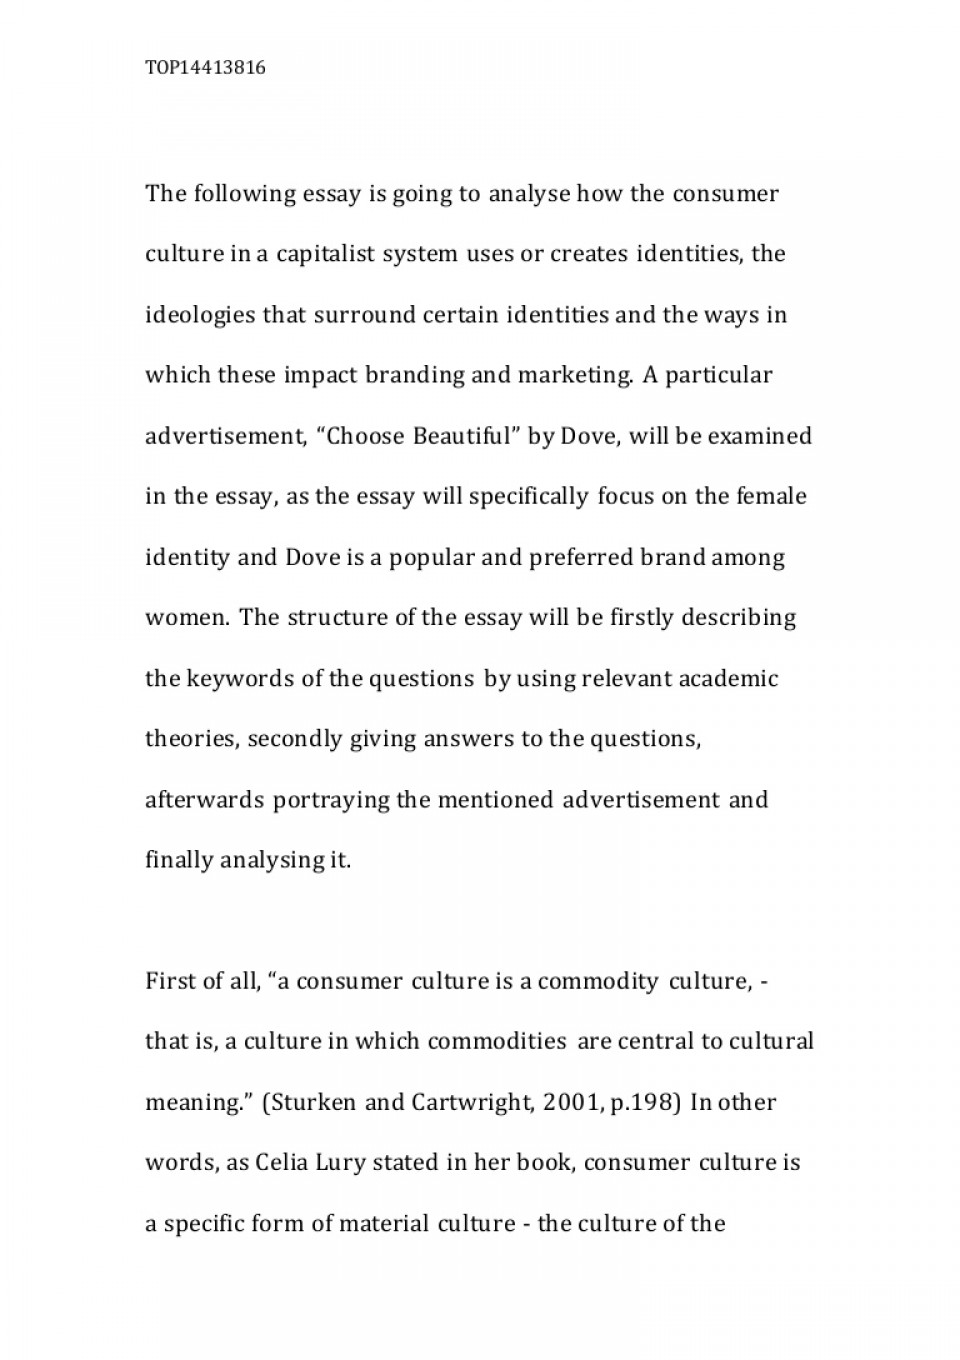 003 Lva1 App6892 Thumbnail Essay About Culture Dreaded On Indian And Society Celebrating Arts Through Reading 960